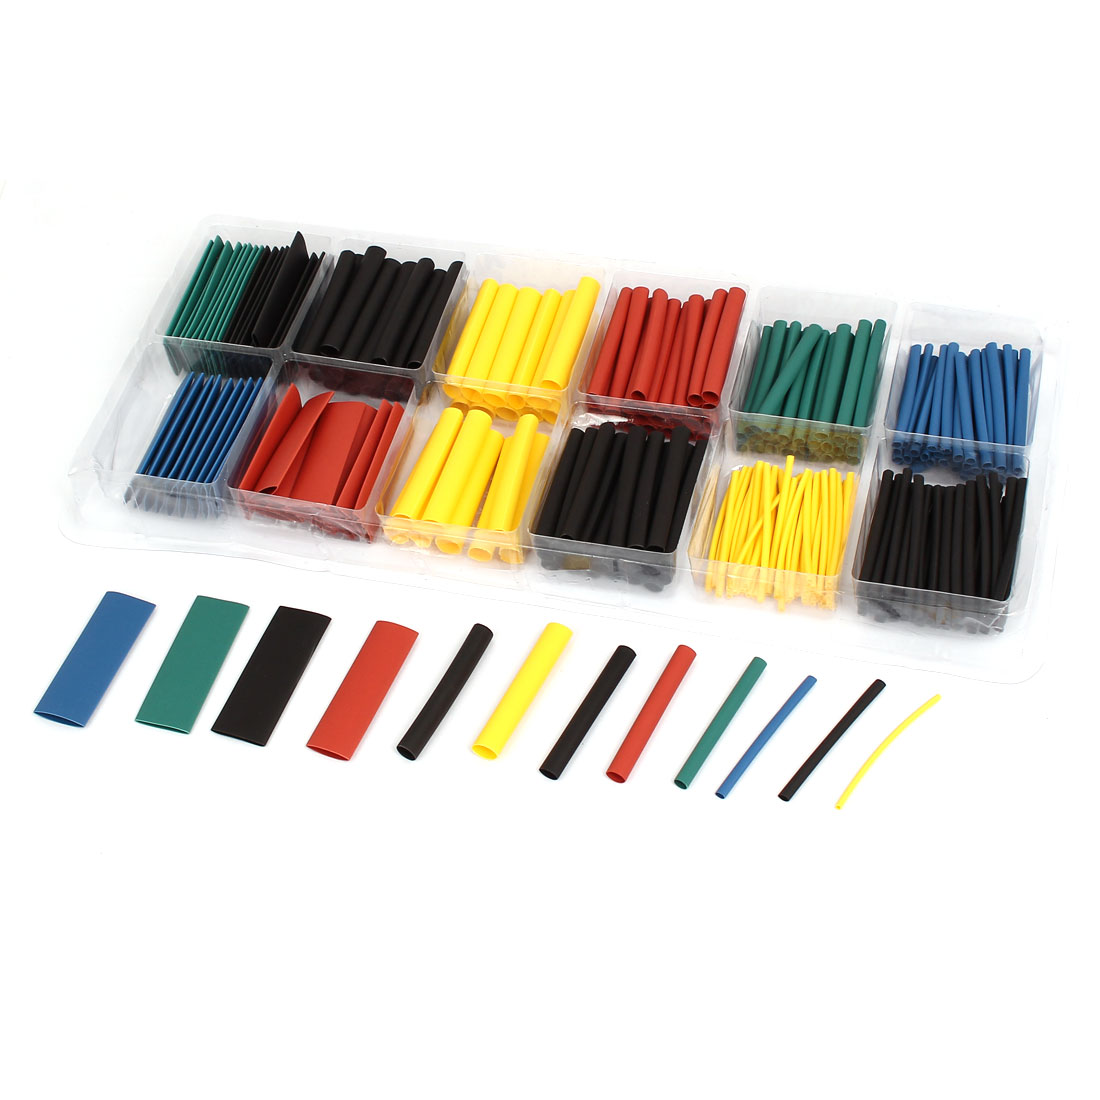 Five Colors Heat Shrink Tube Wire Wrap Cable Sleeve Sets 8 Sizes 280pcs